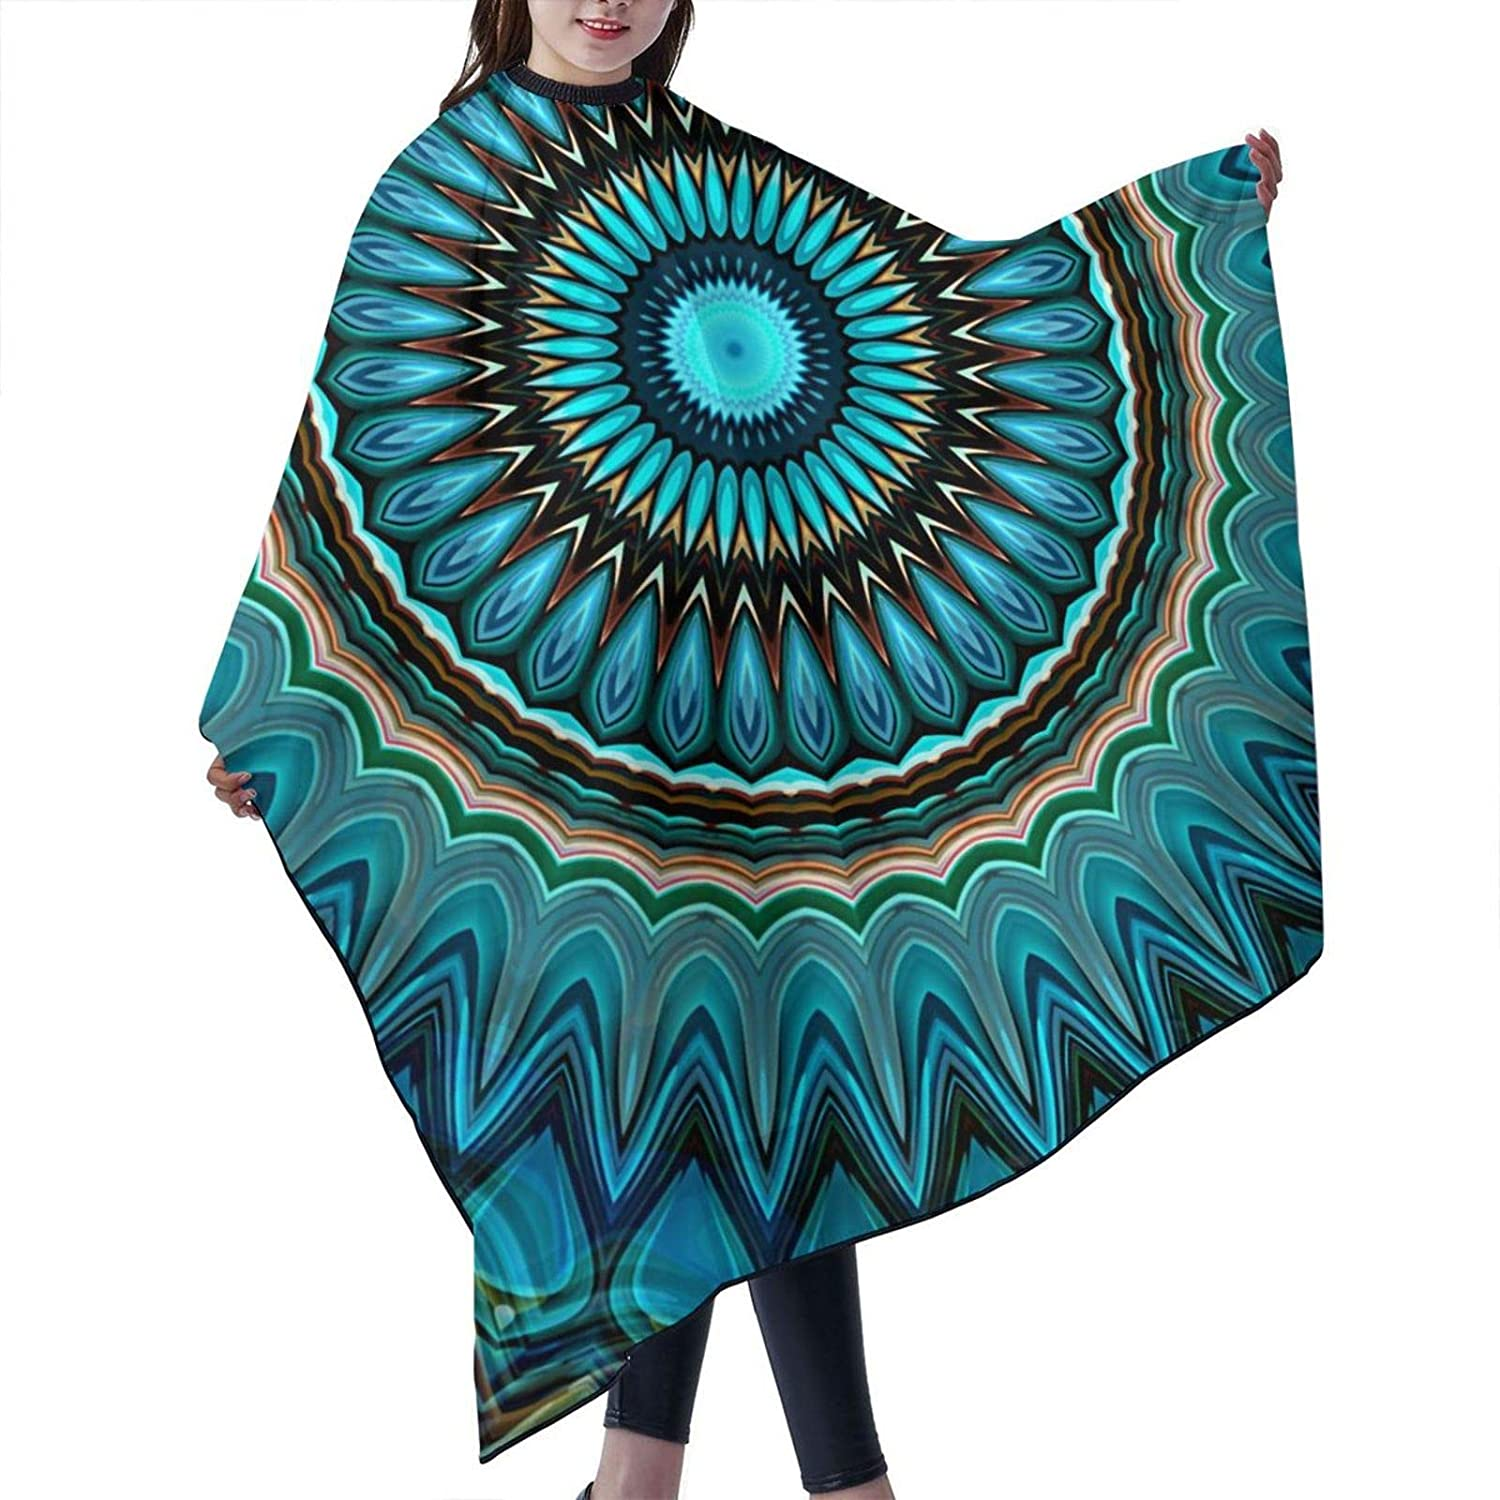 Turquoise Teal Green New Free Shipping Finally resale start Circle Barber Cape Cover Cloak Professional